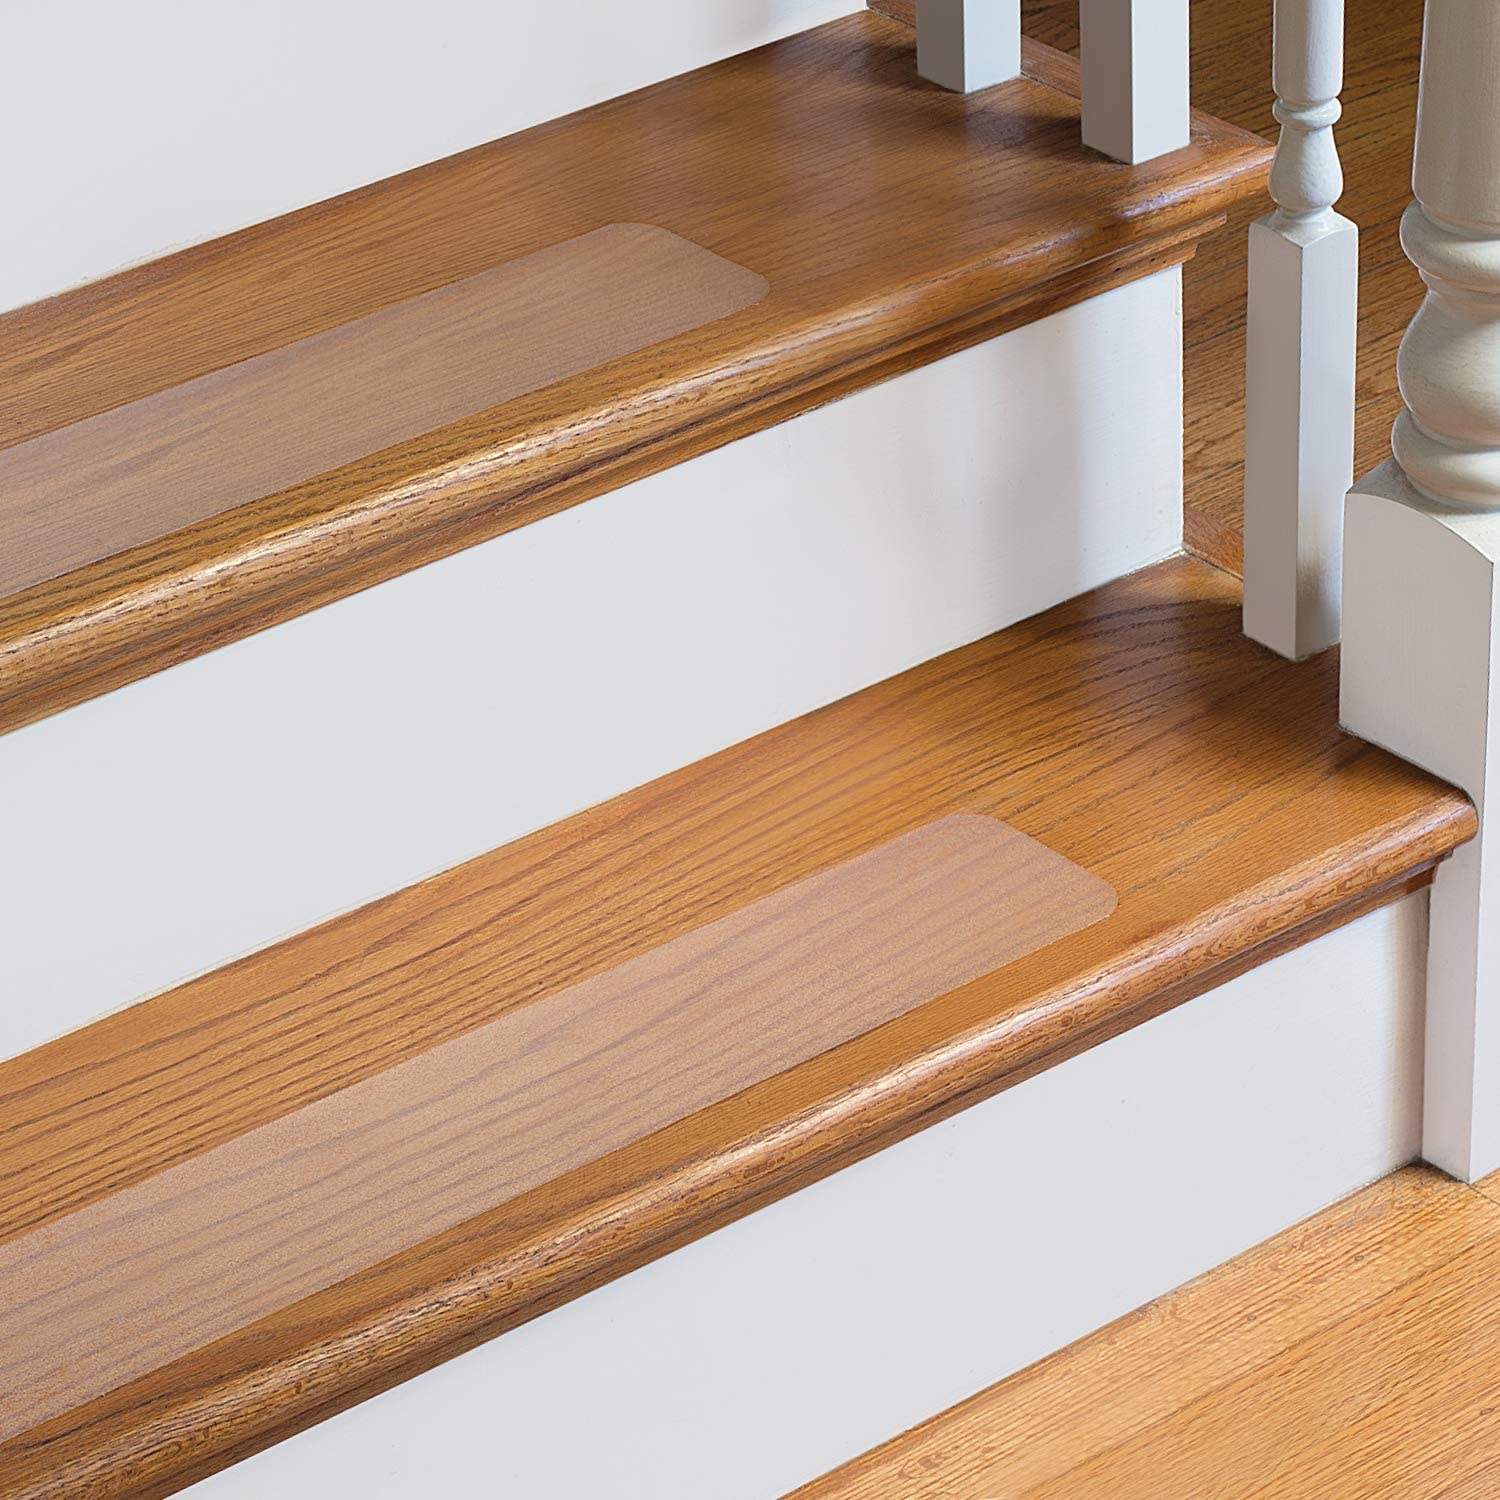 Steptips Clear Self Adhesive Non Slip Stair Treads Pre Cut   Slippery Wood Stairs Outdoor   Composite Decking   Non Slip Stair Tread   Porch   Hardwood   Prevent Slips